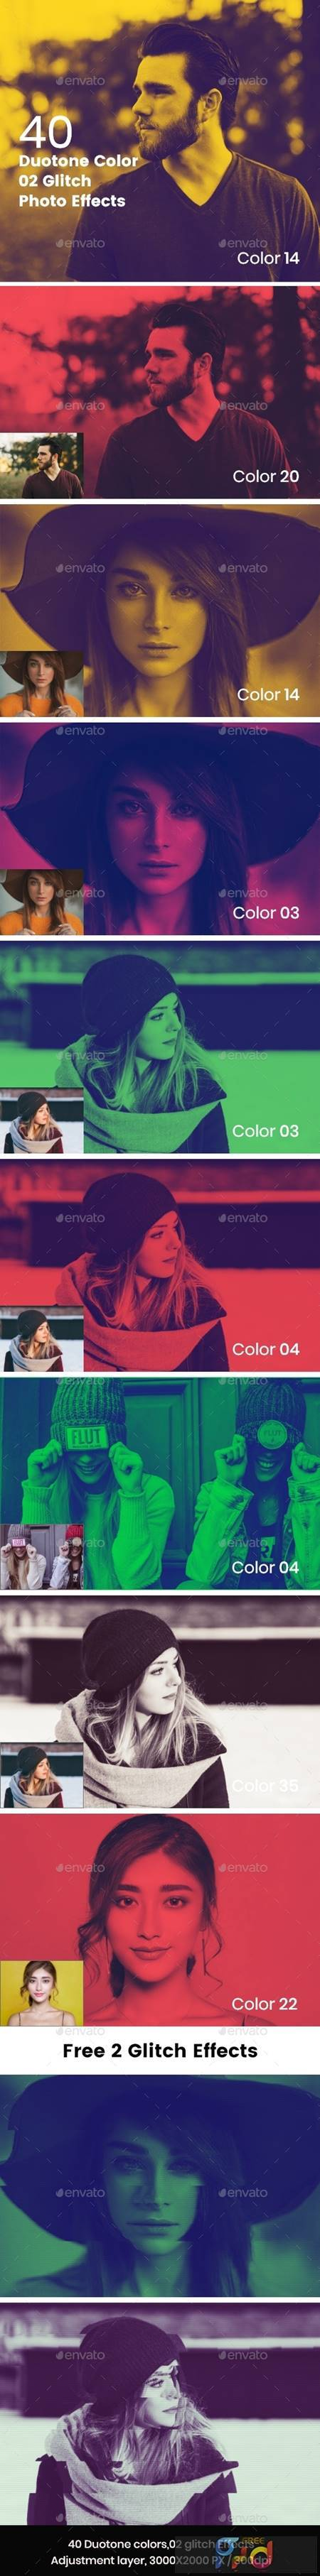 Duotone Color Effects Photo Template 27693687 1